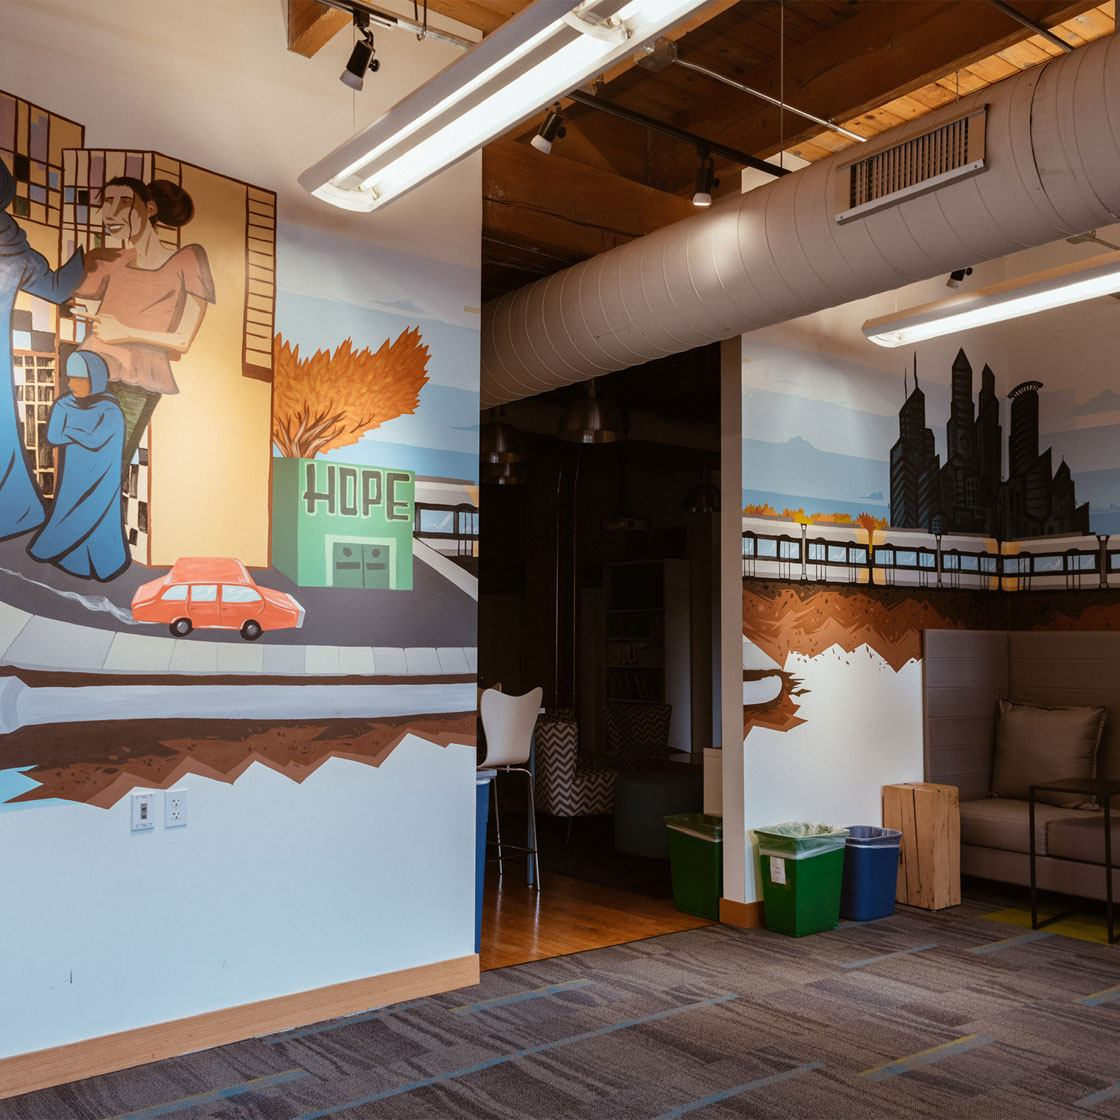 An office space decorated with a painted mural of a cityscape